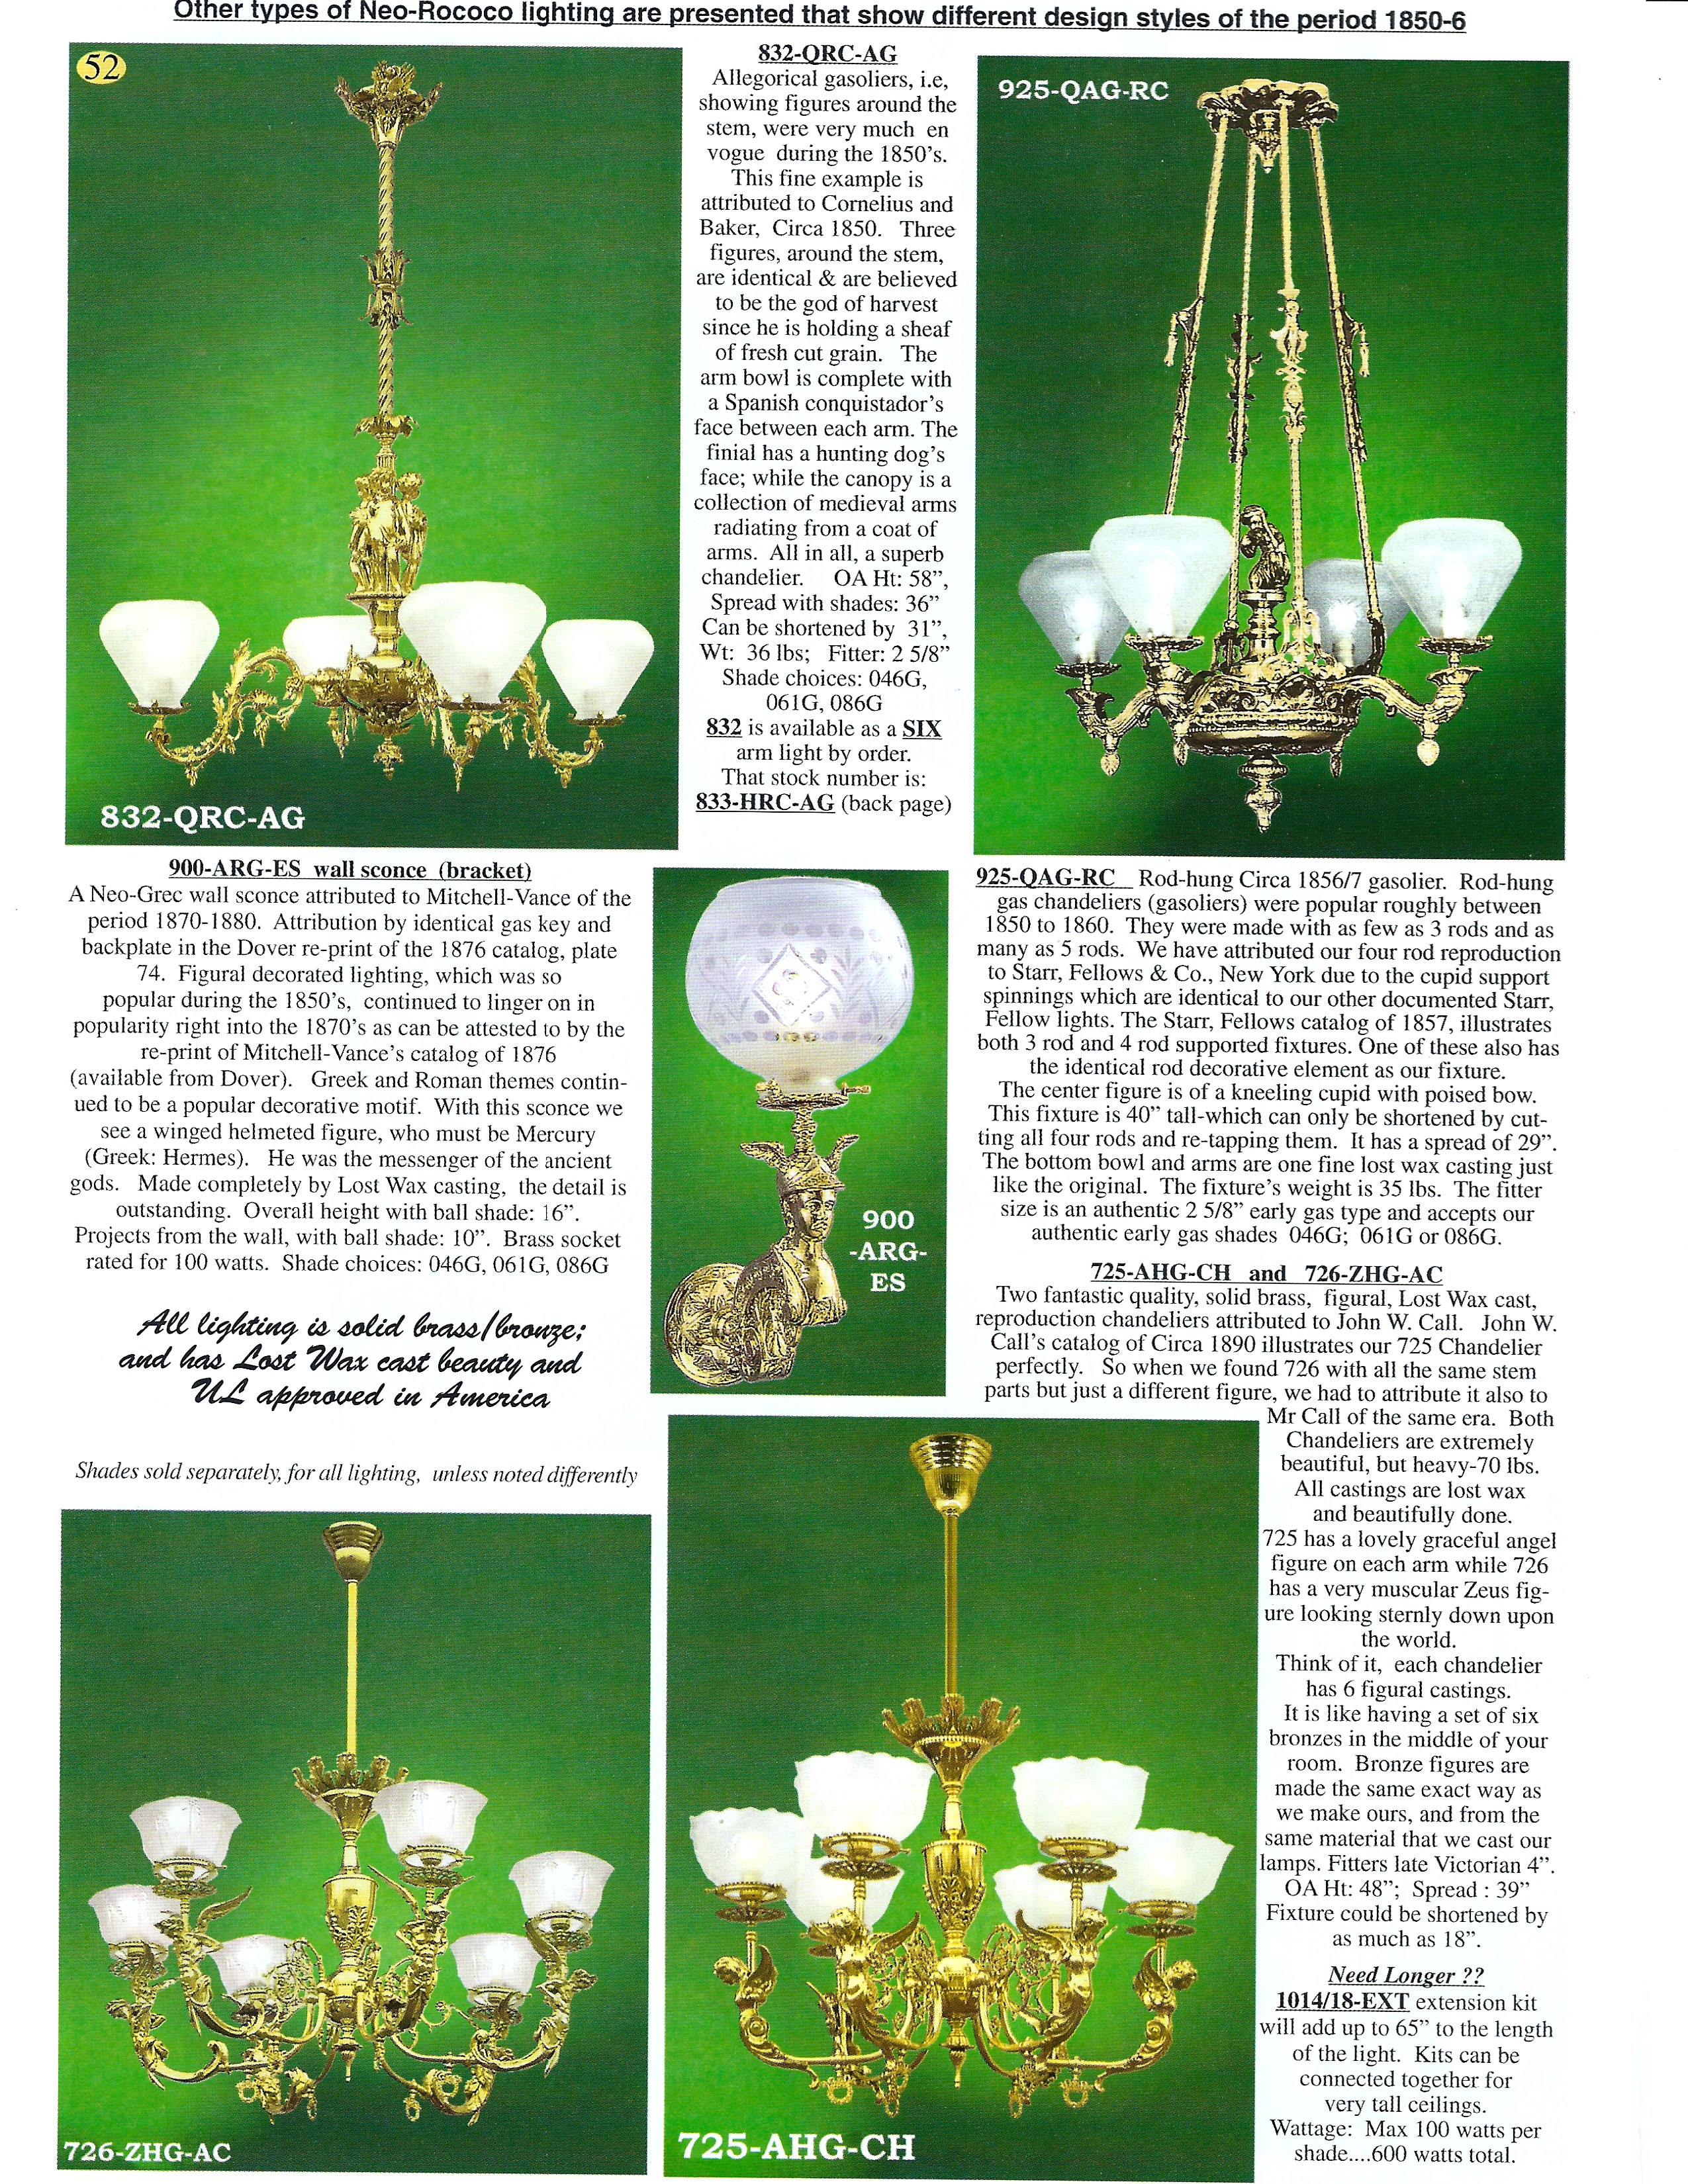 Catalog page 76